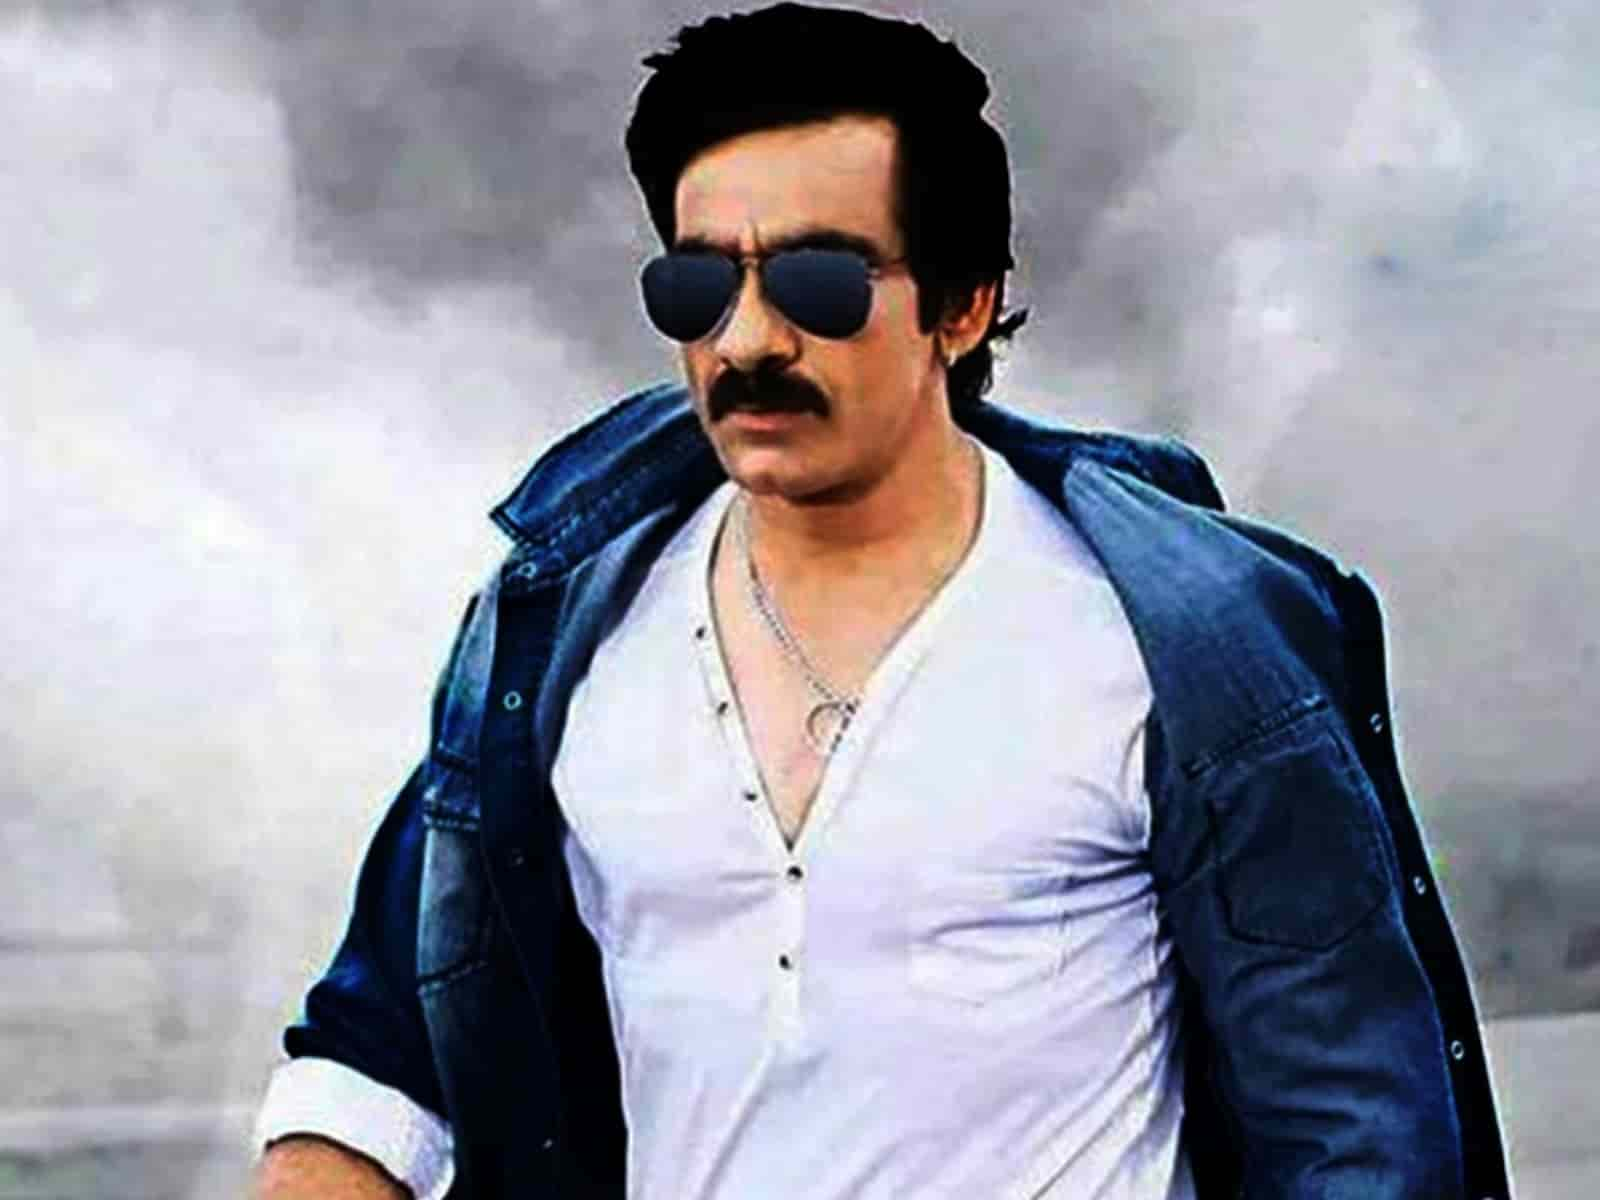 Ravi Teja Movie, Photos(images), Date Of Birth, Family, Brother, Height, Biography, Net Worth, Age, Wife, Details, Education, Instagram, Twitter, Wiki, Imdb, Facebook, Hairstyle, Youtube (18)